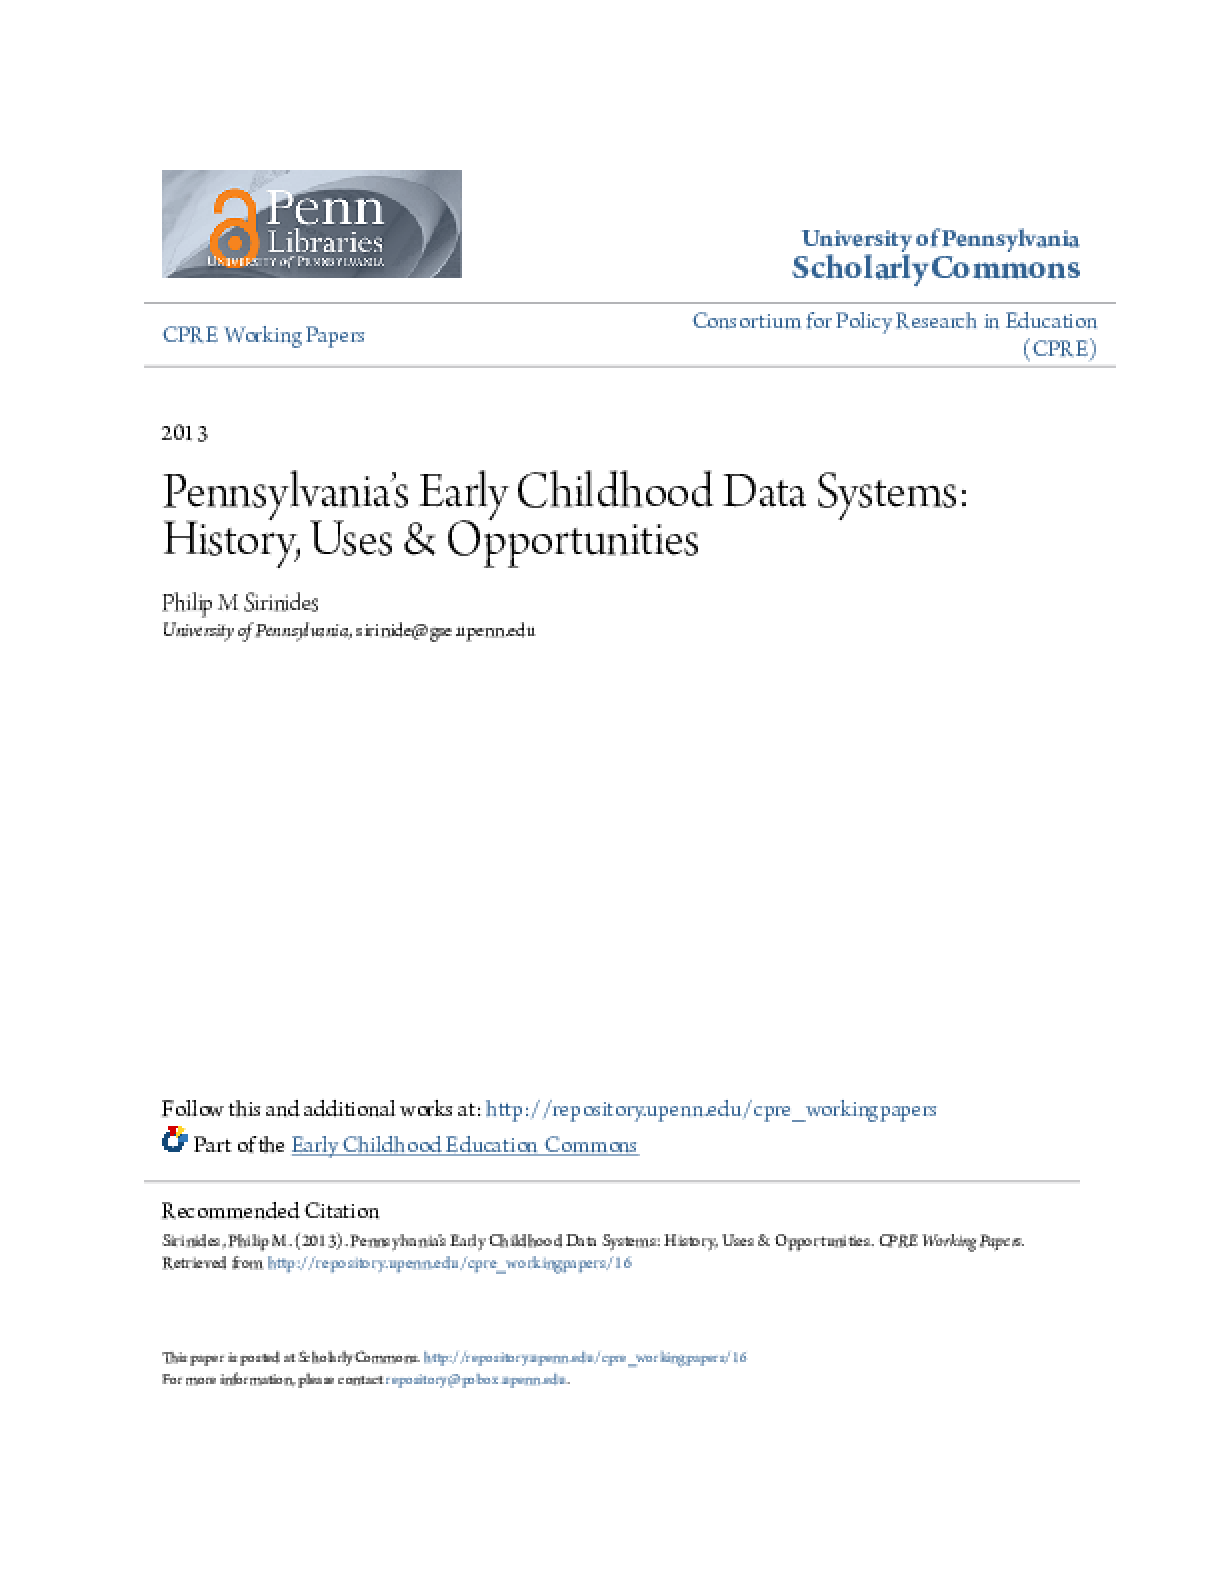 Pennsylvania's Early Childhood Data Systems: History, Uses & Opportunities